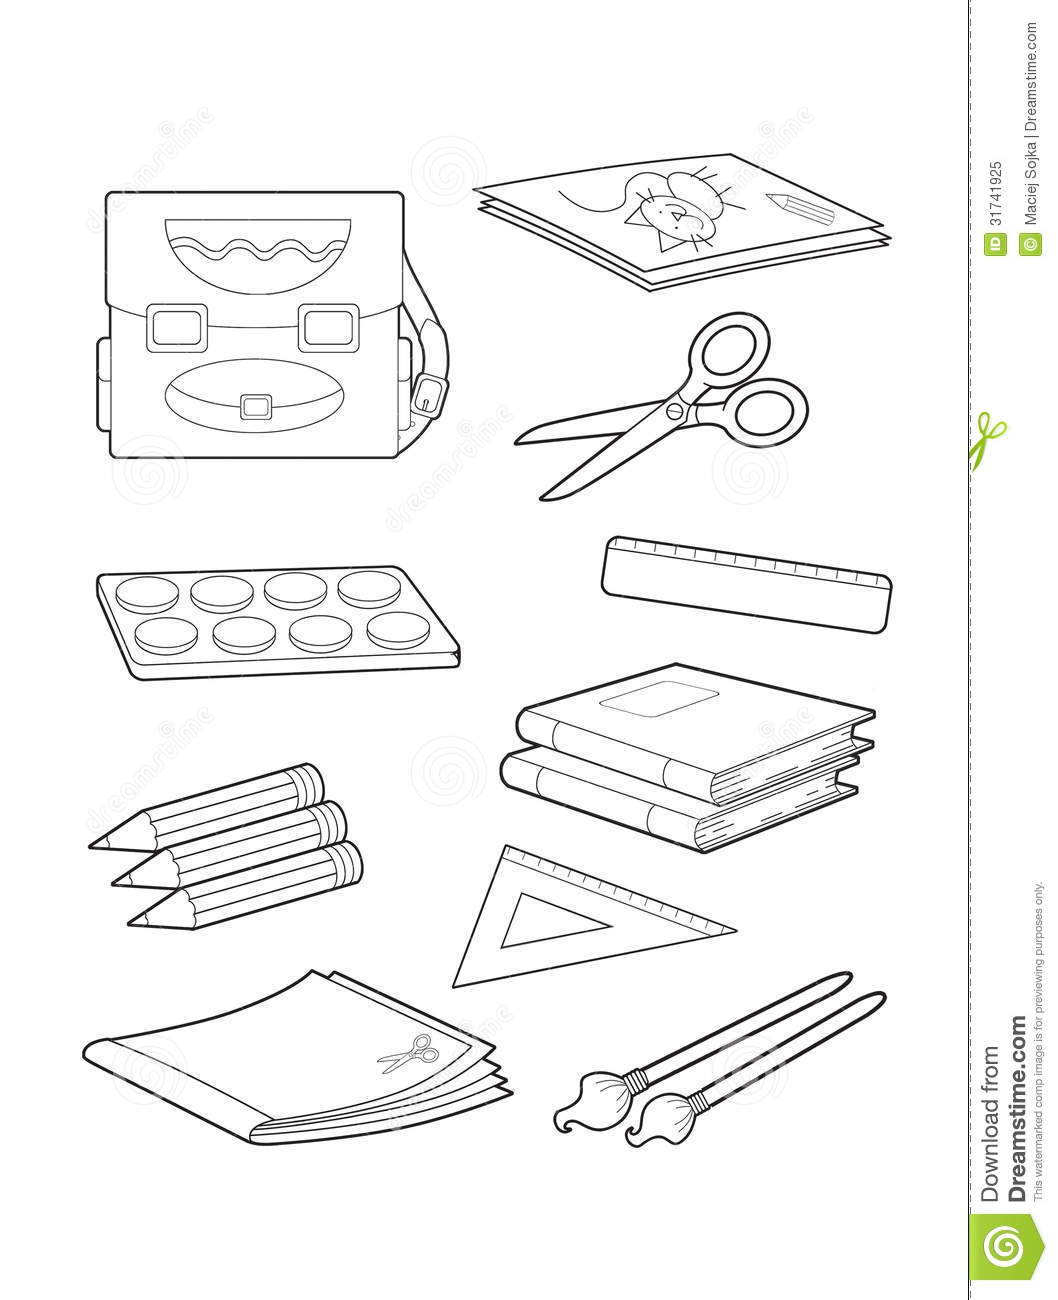 school objects coloring pages english lessons children june 2010 coloring school pages objects